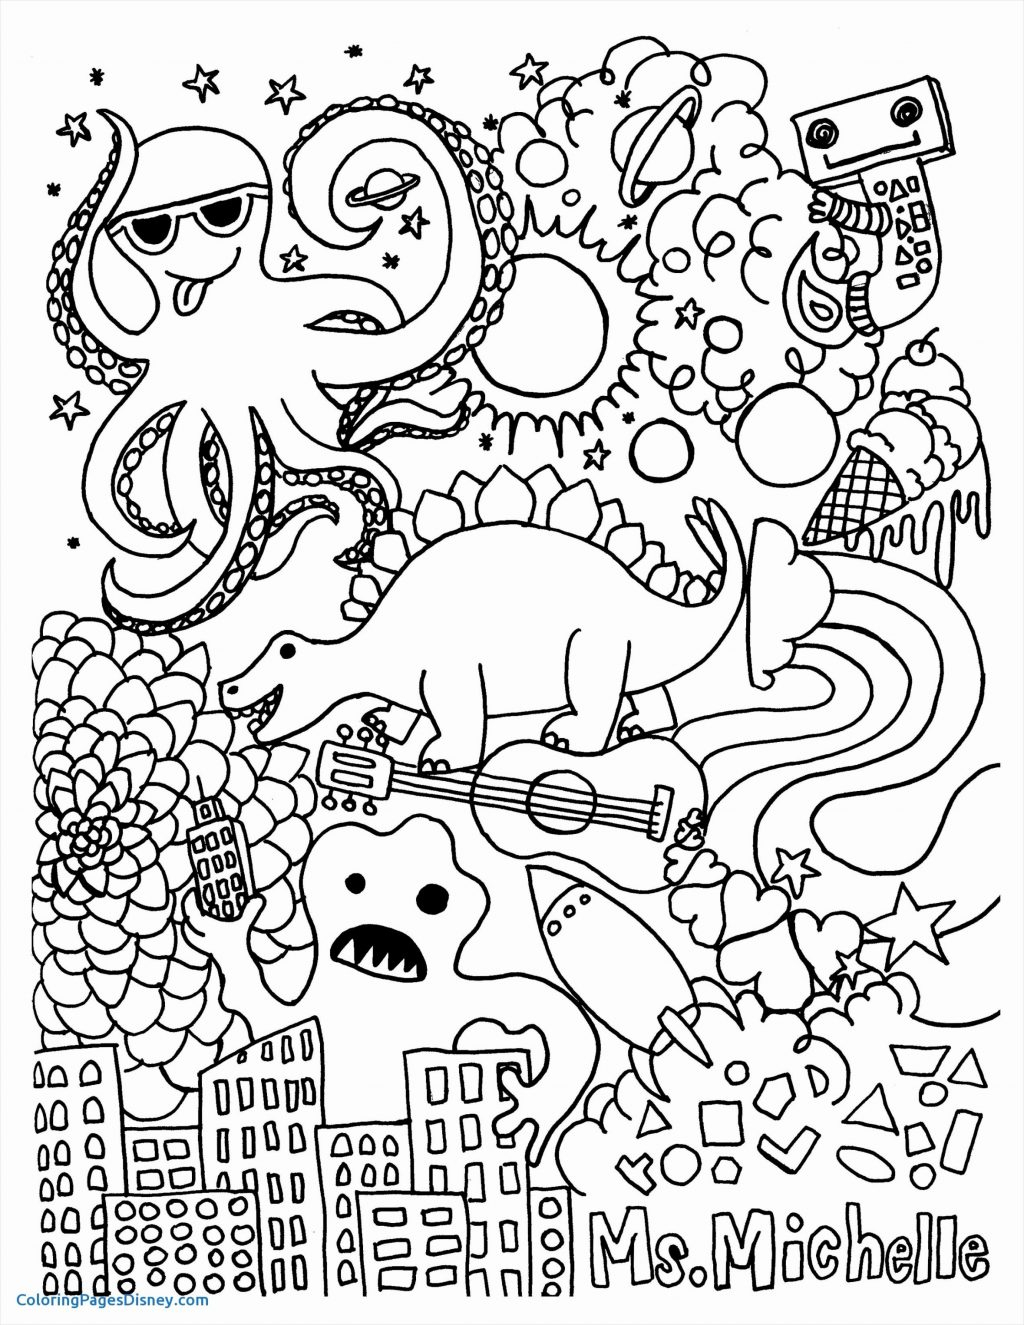 Coloring Pages ~ Extraordinary Bibleharactersoloring Pages Free - Free Printable Bible Characters Coloring Pages